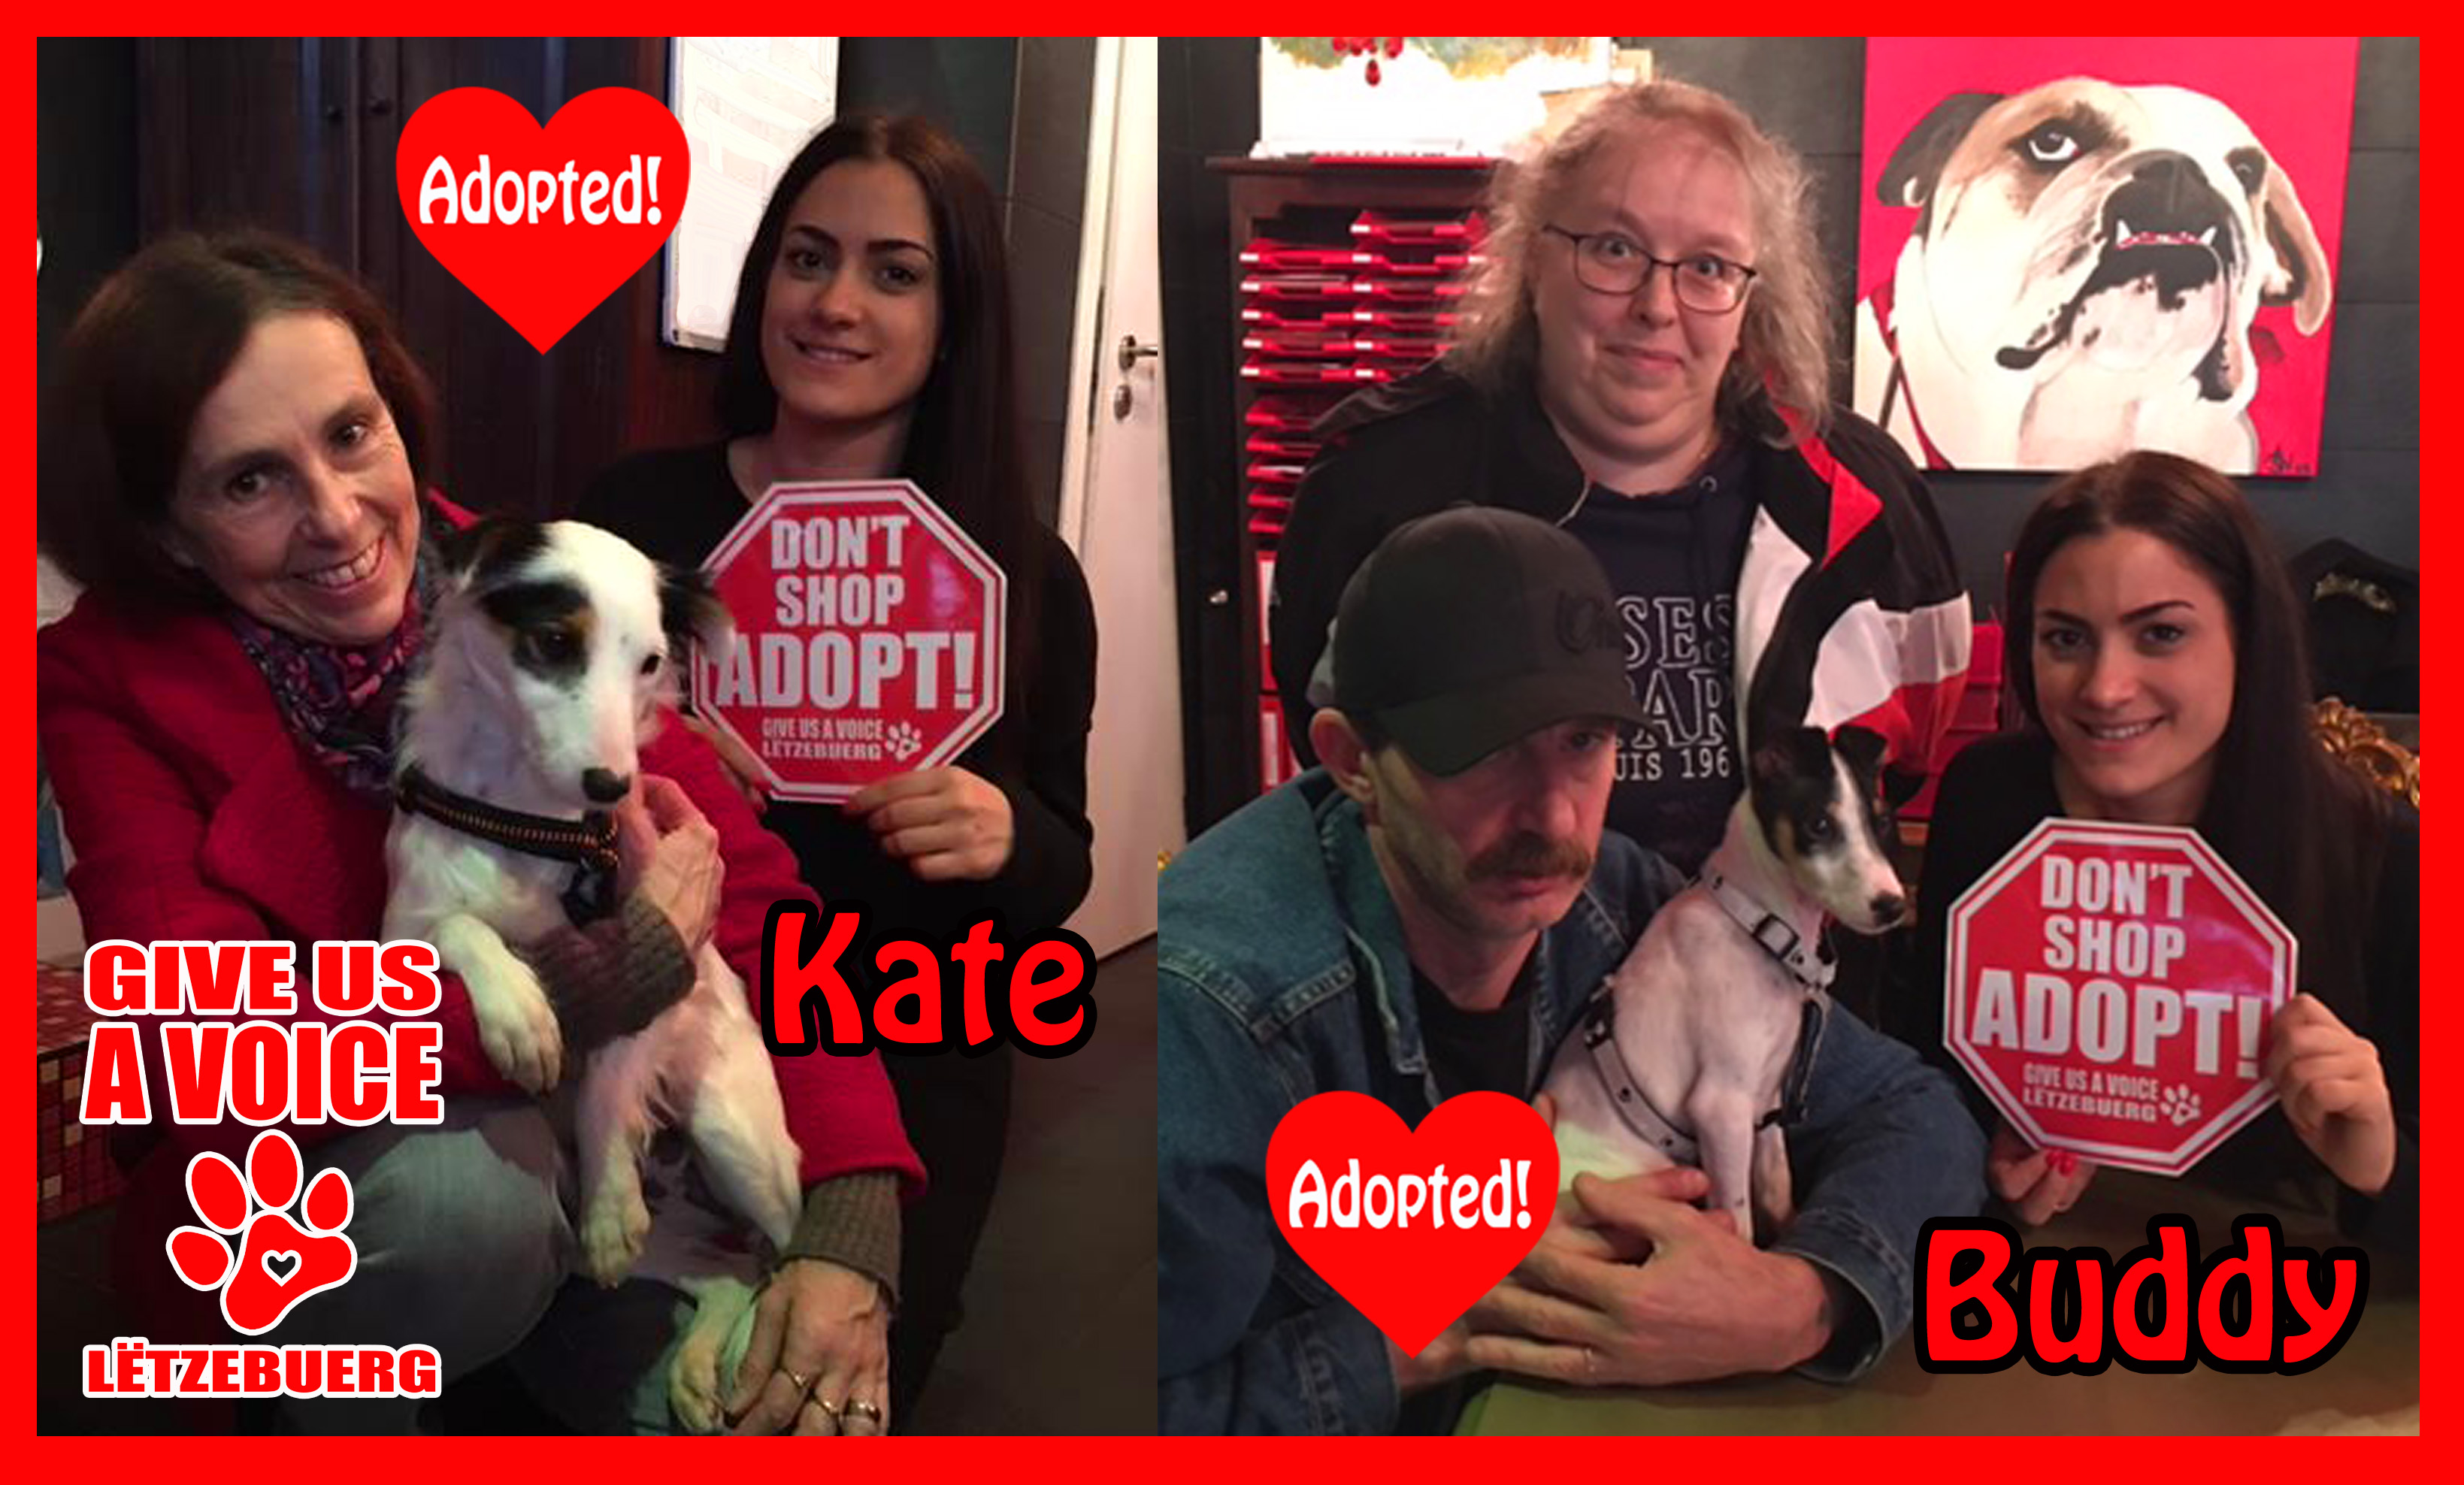 Buddy and Kate Adopted! copy